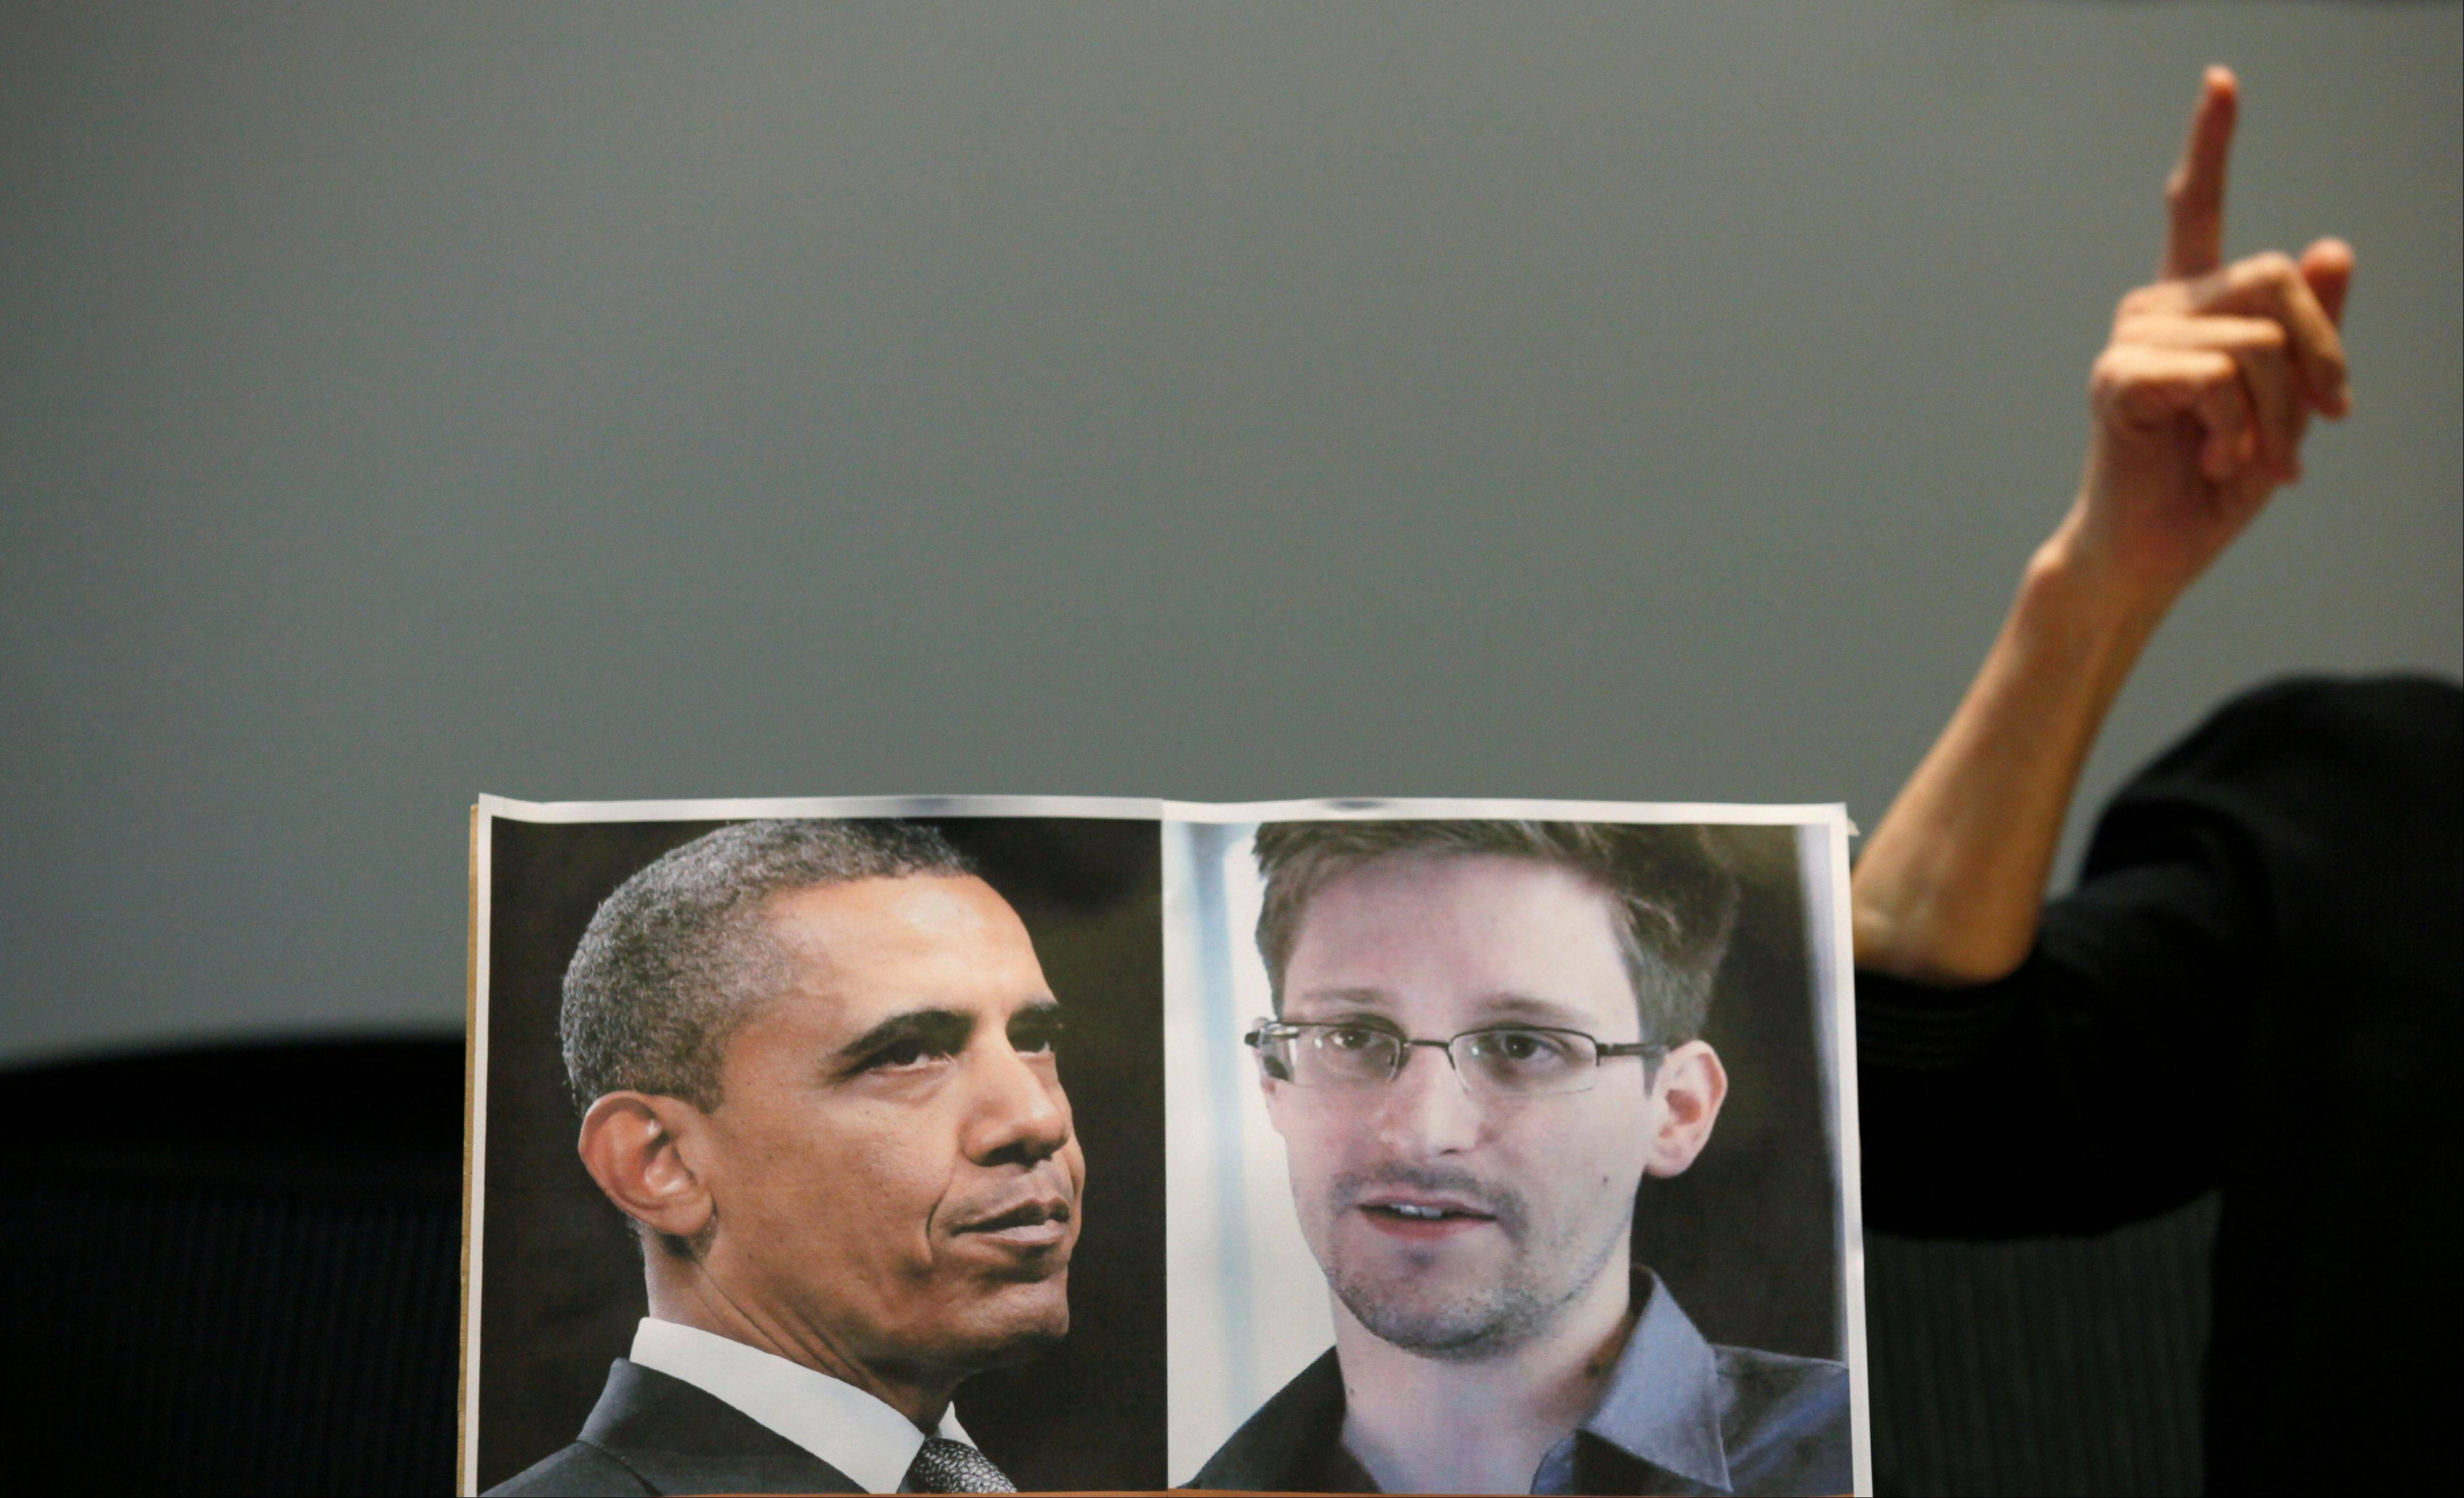 Pro-democractic legislator Claudia Mo Man-ching speaks next to a picture of U.S. President Barack Obama and Edward Snowden during a news conference Friday in Hong Kong. Two lawmakers in Hong Kong said they had written to President Obama to try to persuade him not to bring charges against the former US intelligence contractor Snowden.